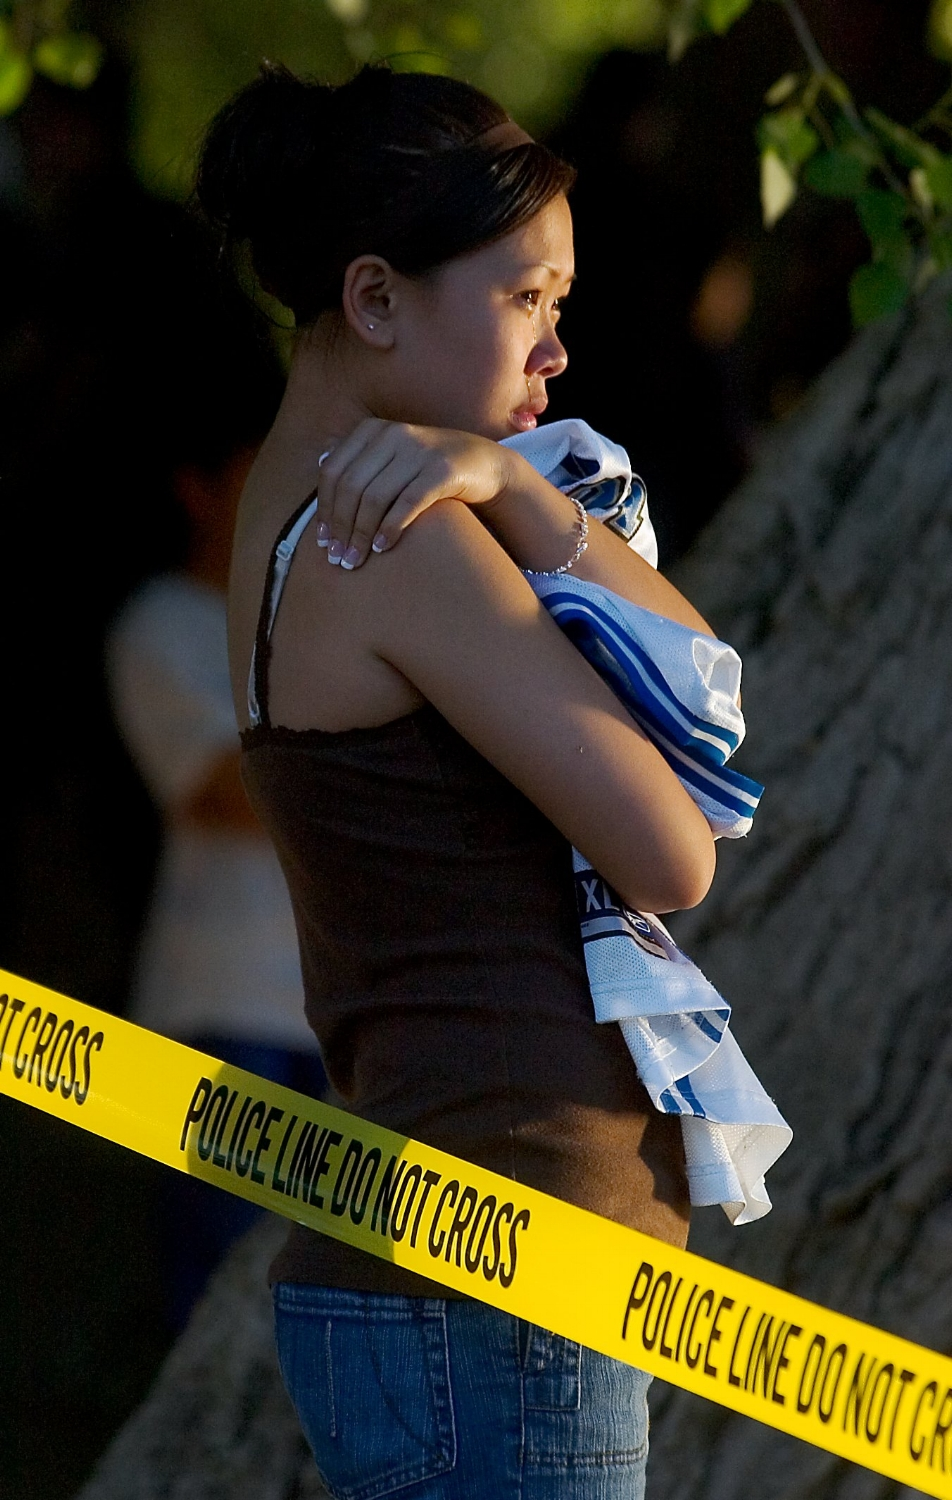 Julie Saeteurn 13, cries while she waits for law enforcement divers to recover the body of her boyfriend Jimmy Saeteurn from the river at Discovery Park in Sacramento on Thursday May 18, 2006.